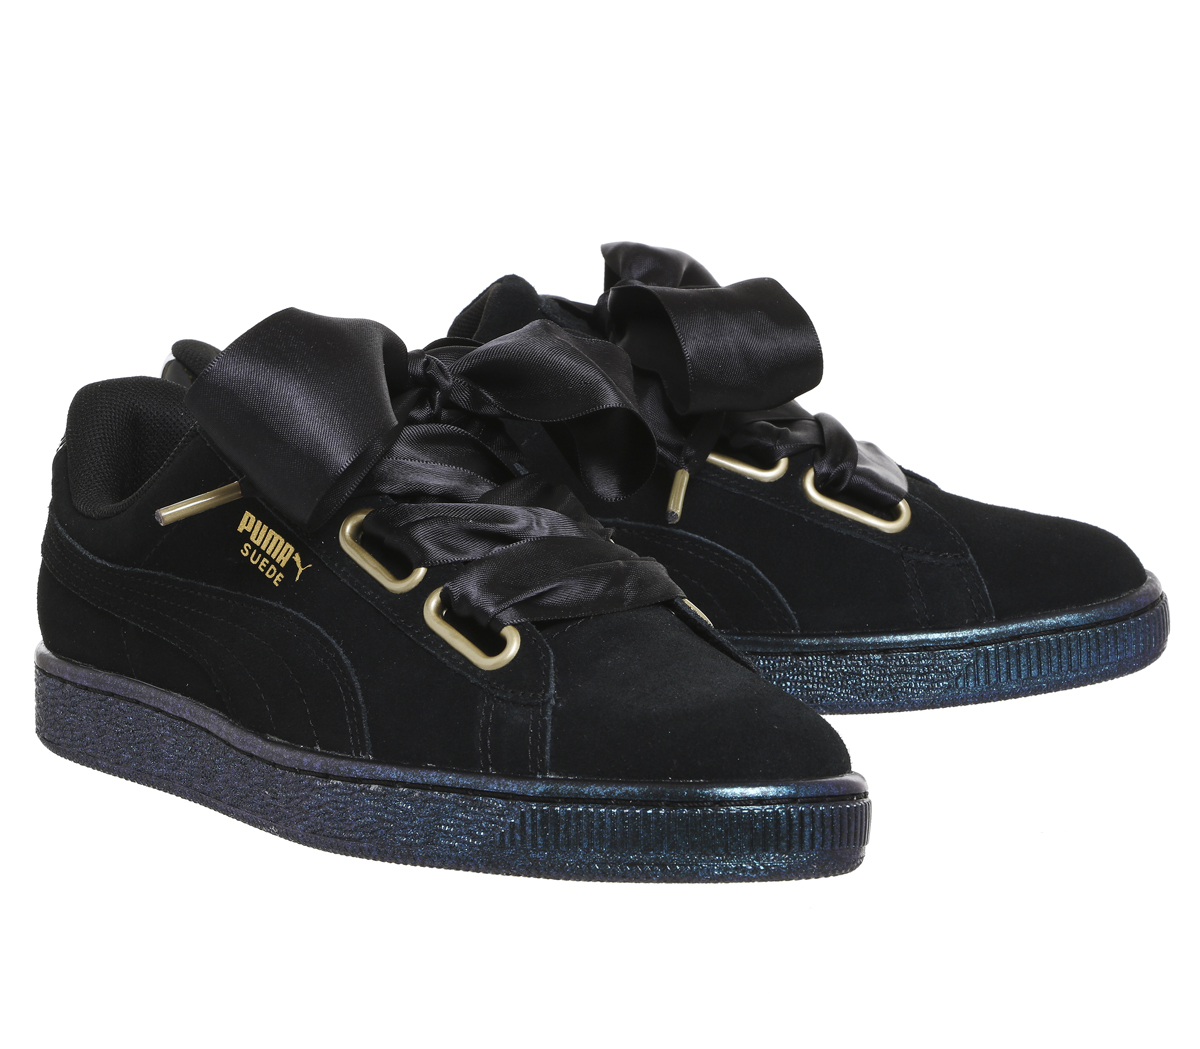 24b3f9f73c53 Womens Puma Suede Heart PUMA BLACK SATIN Trainers Shoes